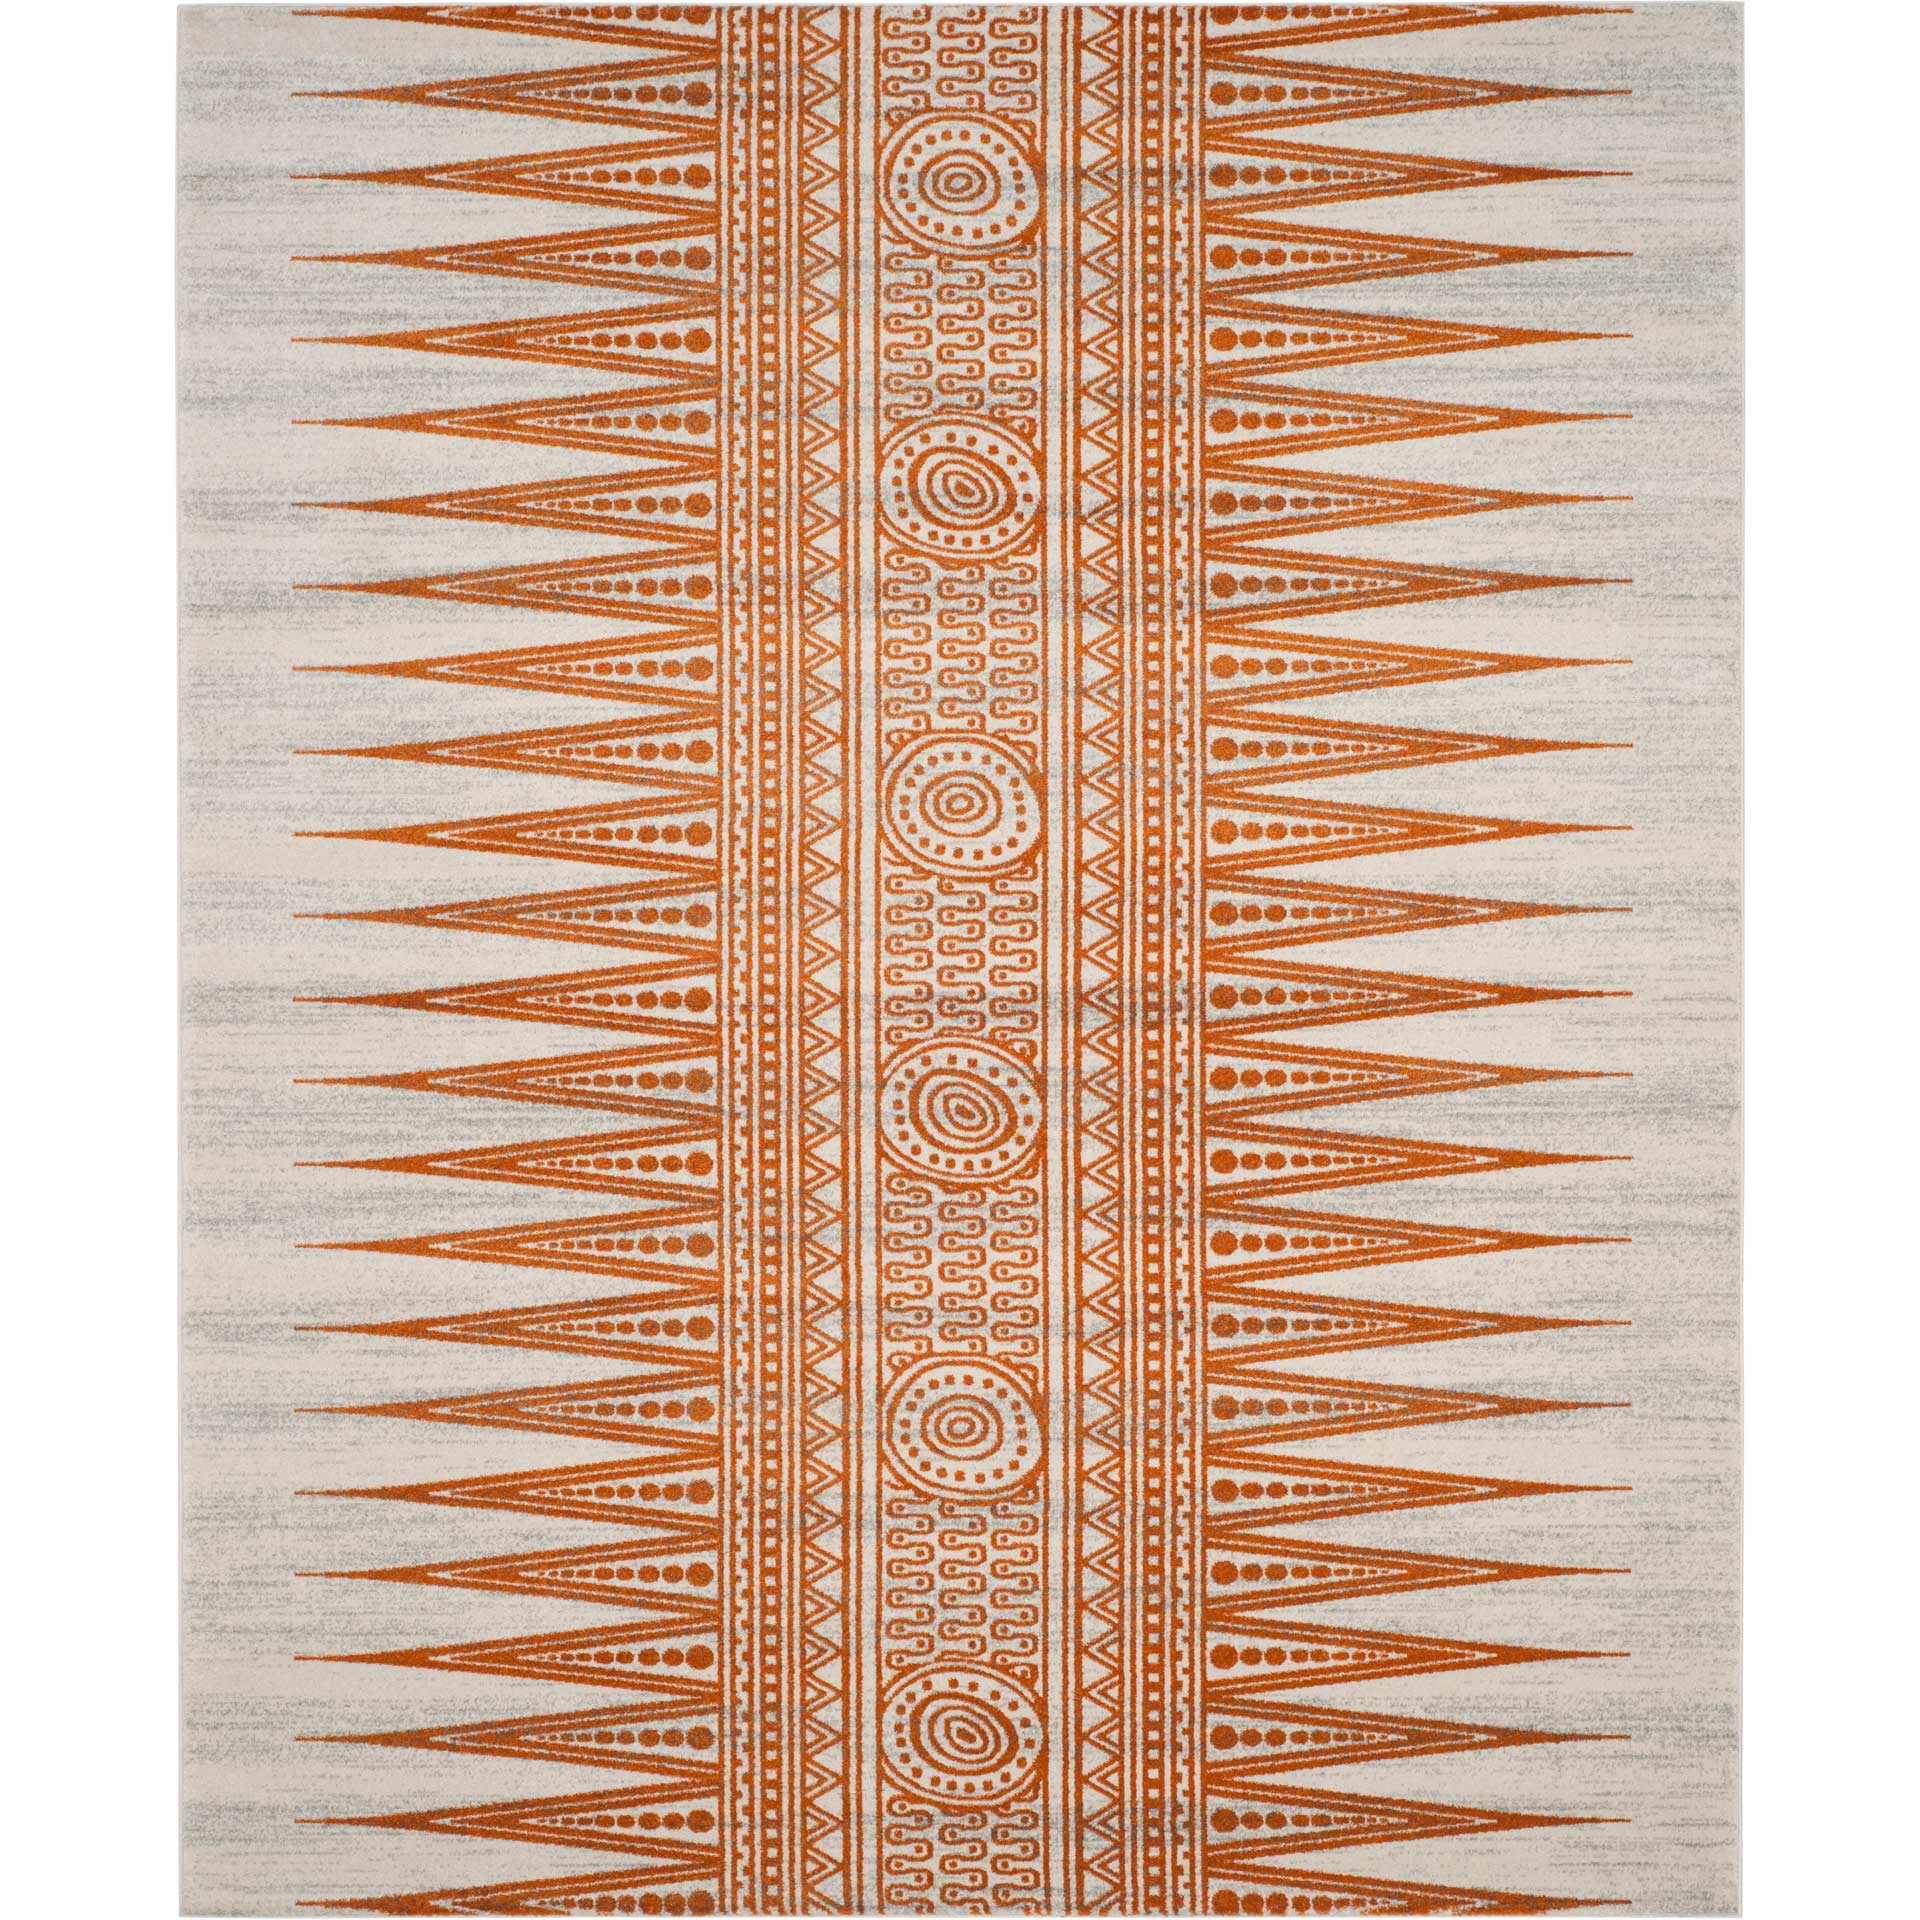 Evoke Tribal Ivory/Orange Area Rug